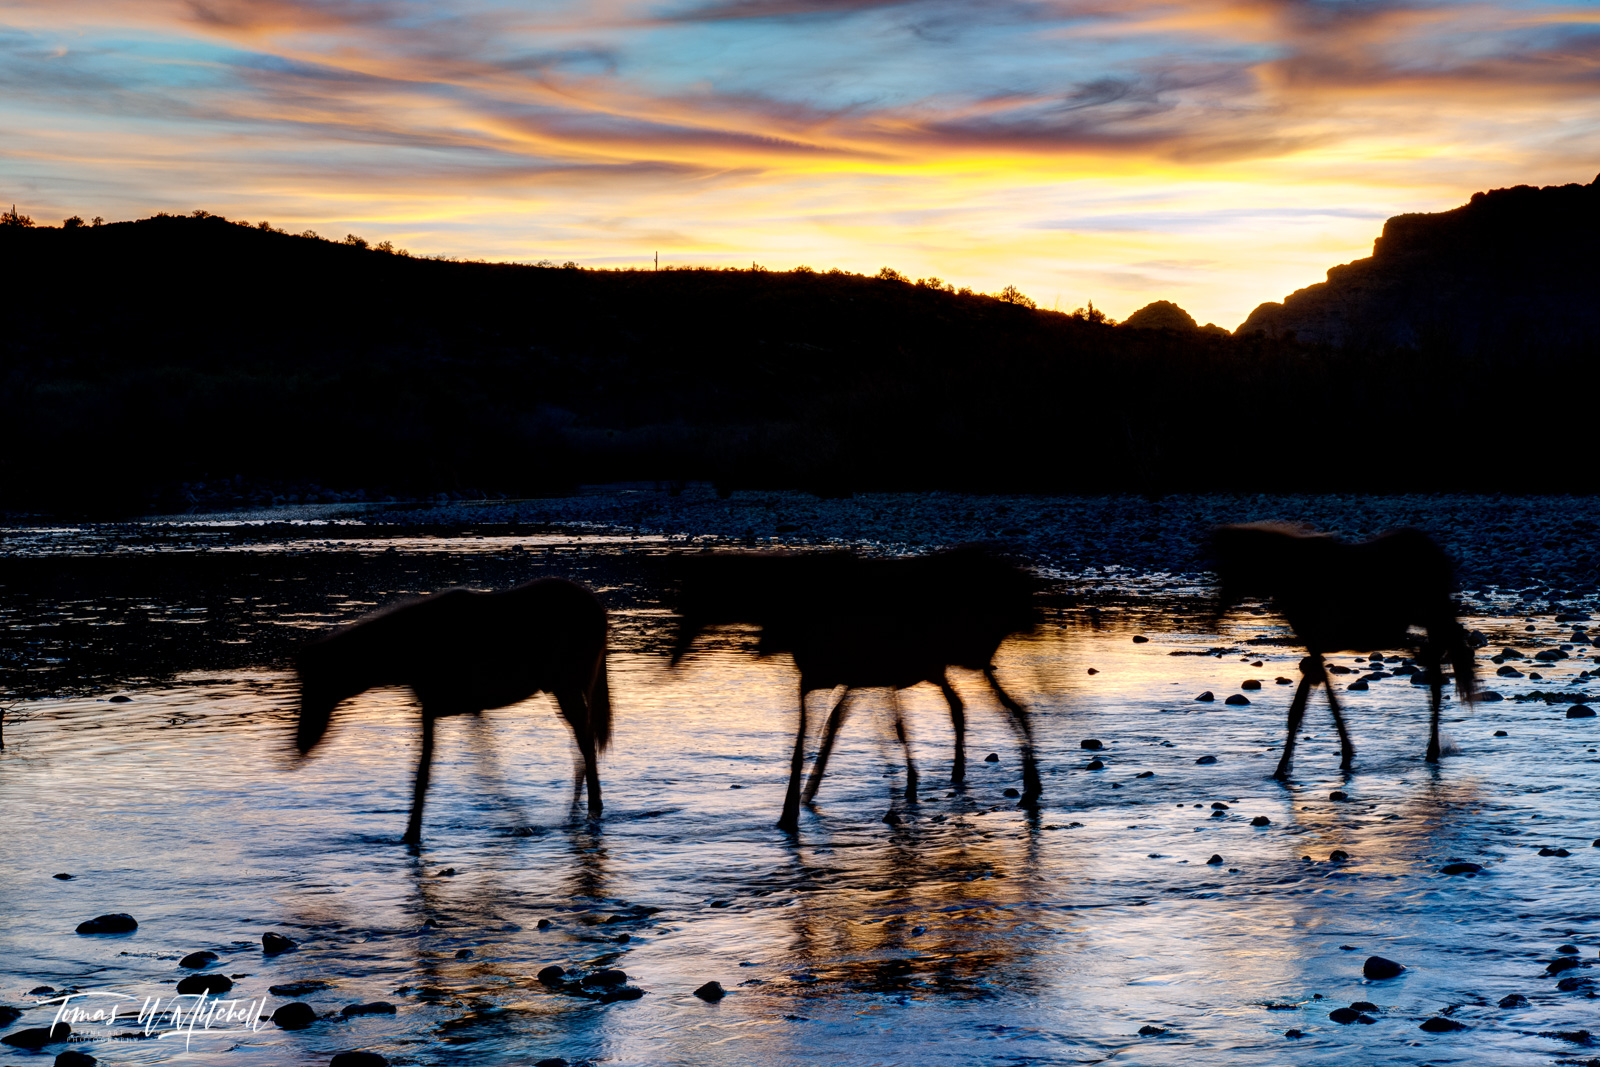 limited edition, fine art, prints, salt river, arizona, wild horses, mustangs, abstract, photograph, sunset, water, twilight, long exposure, photo